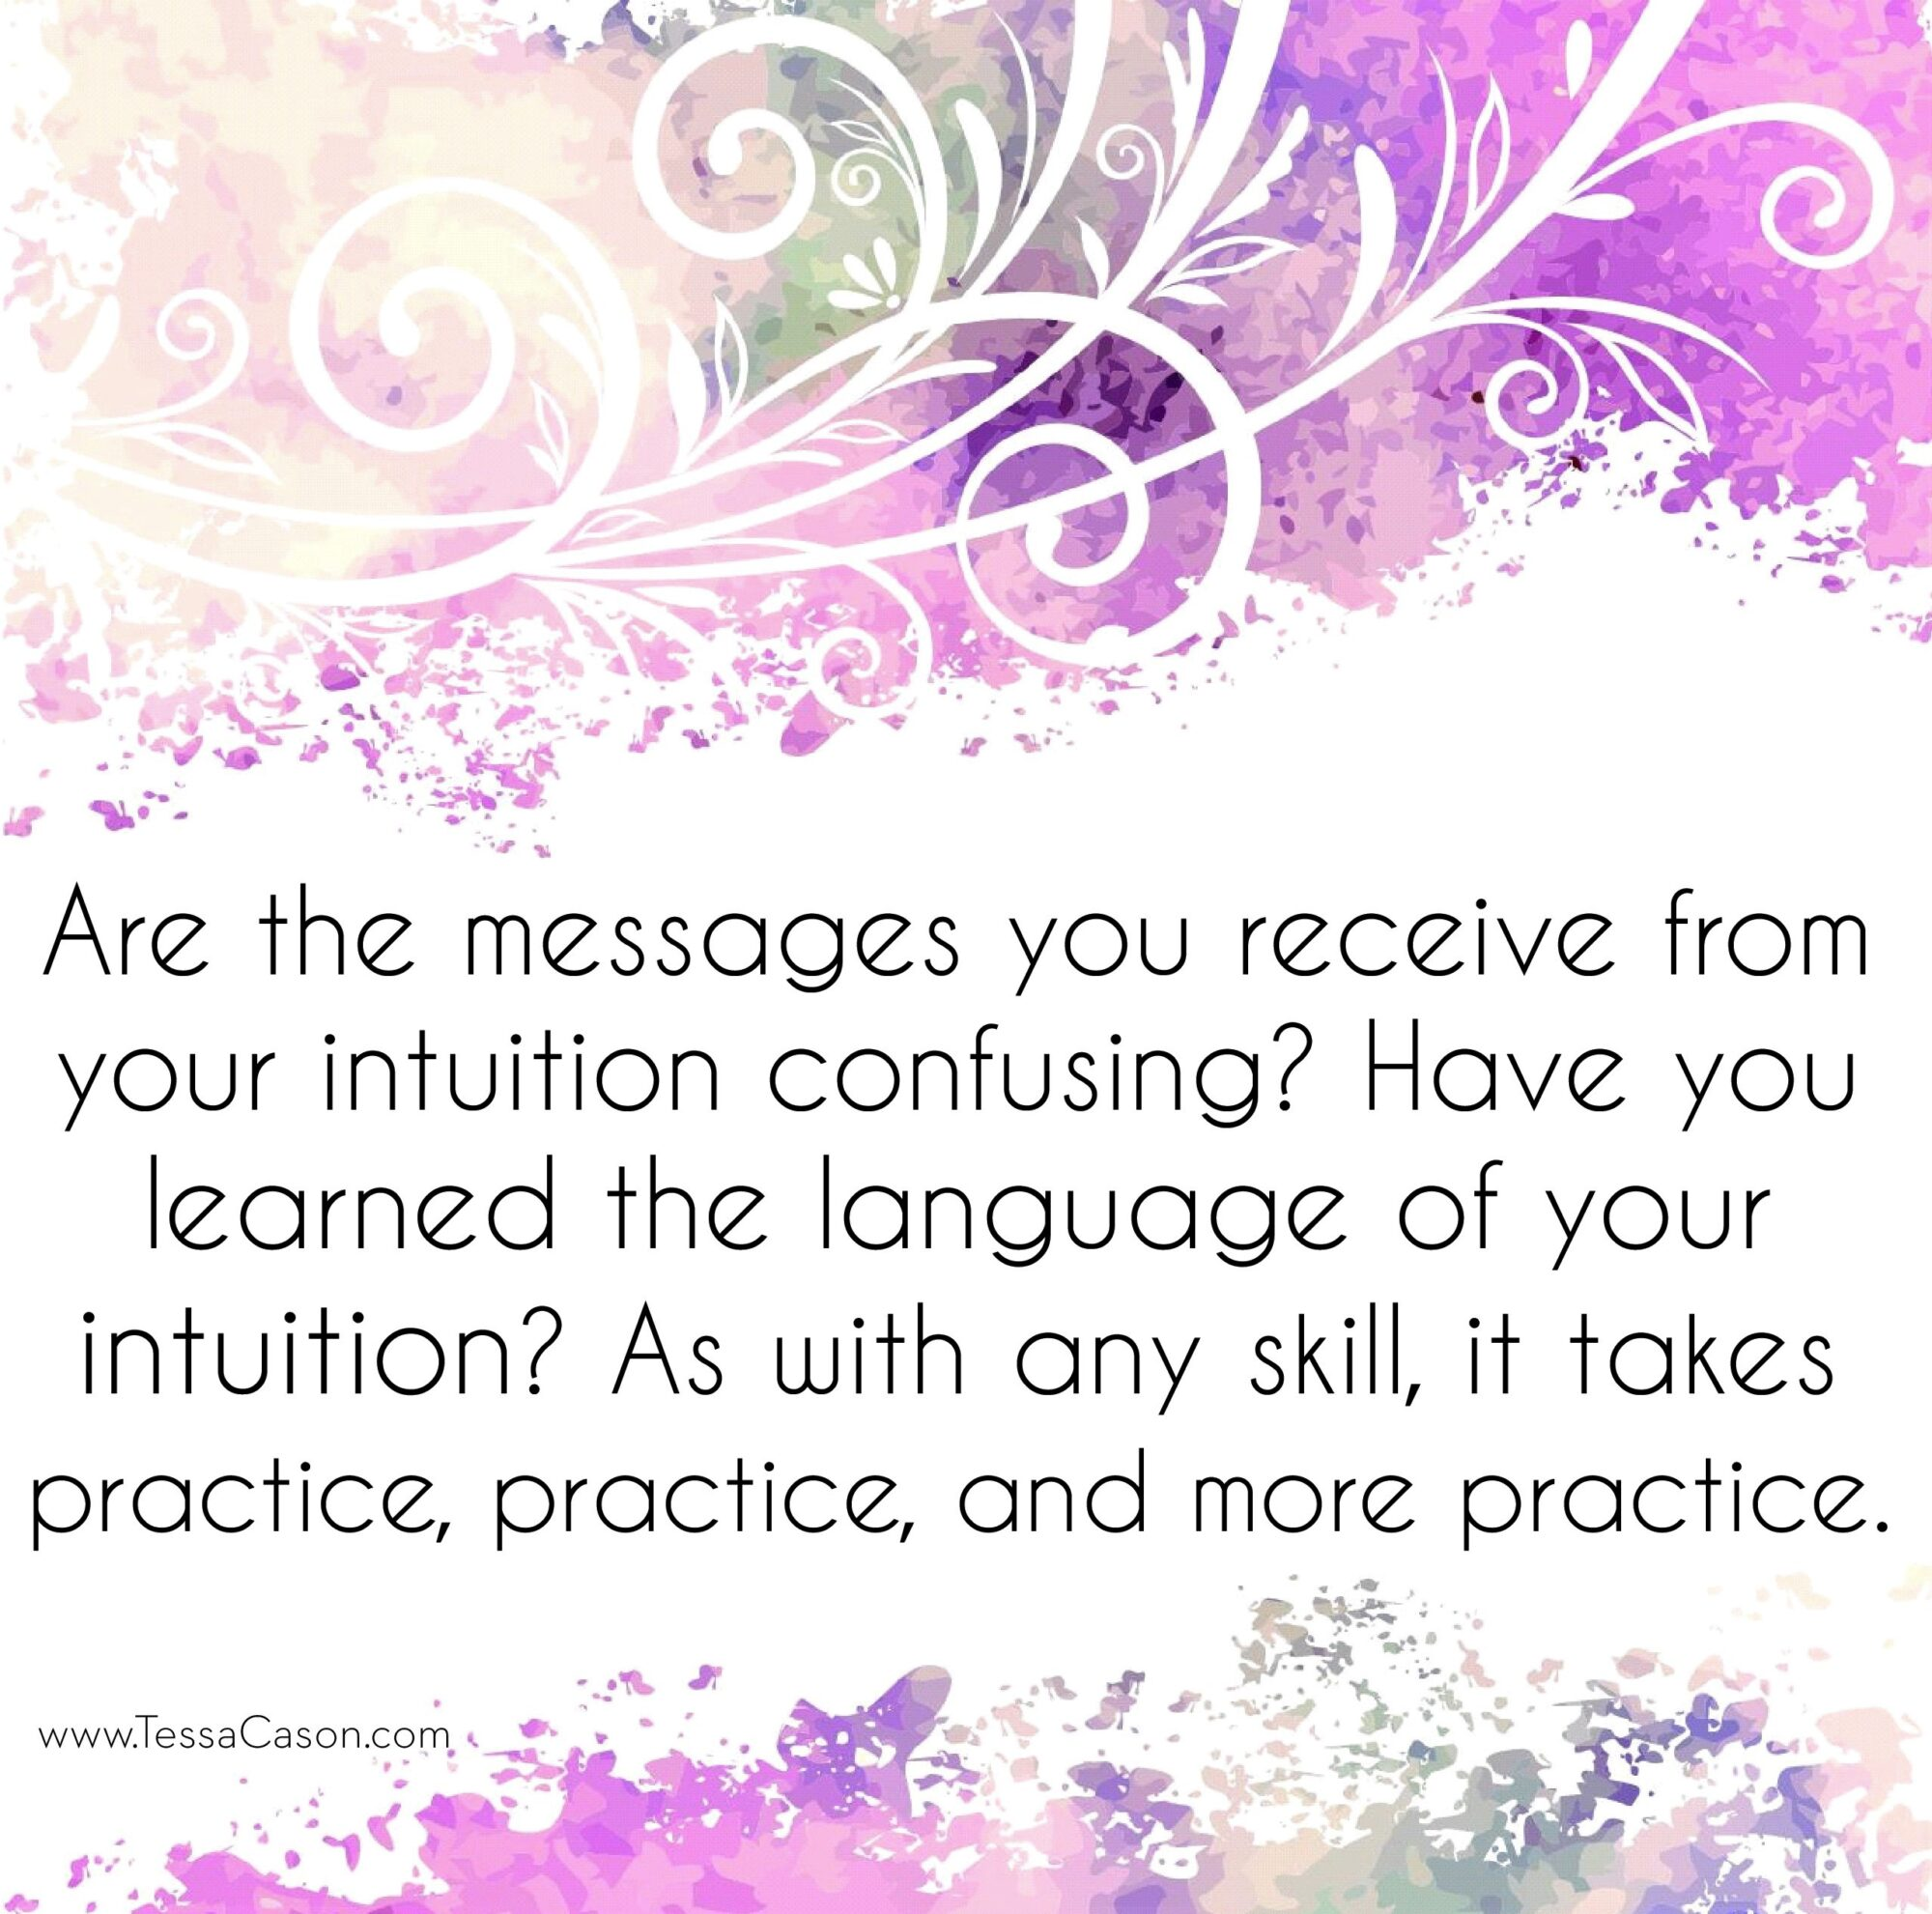 Are the messages you receive from your intuition confusing